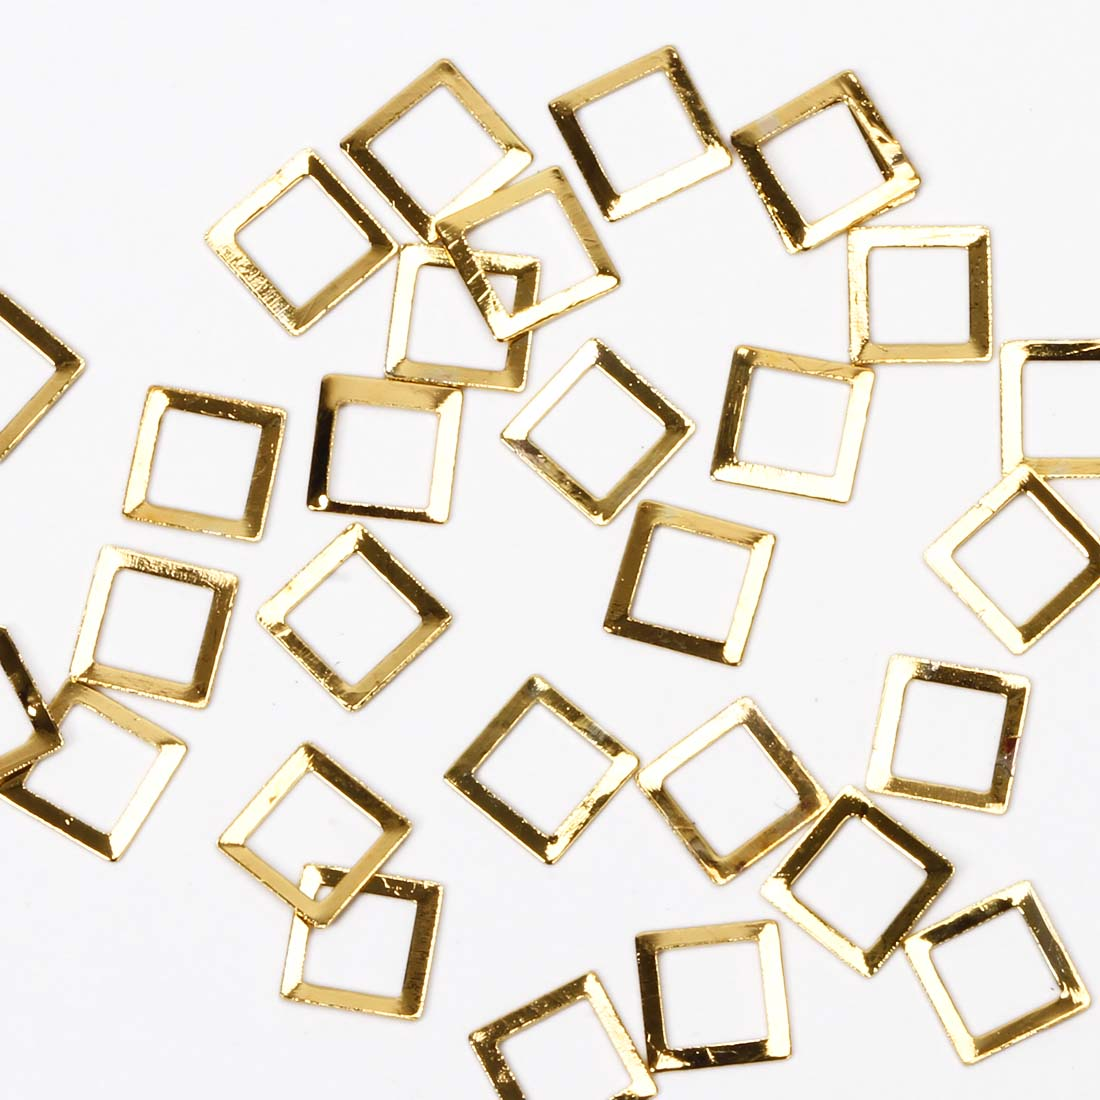 BMC Chic 100pc Gold Metal Alloy Square Cut-Out Nail Art Accessory Frames Studs